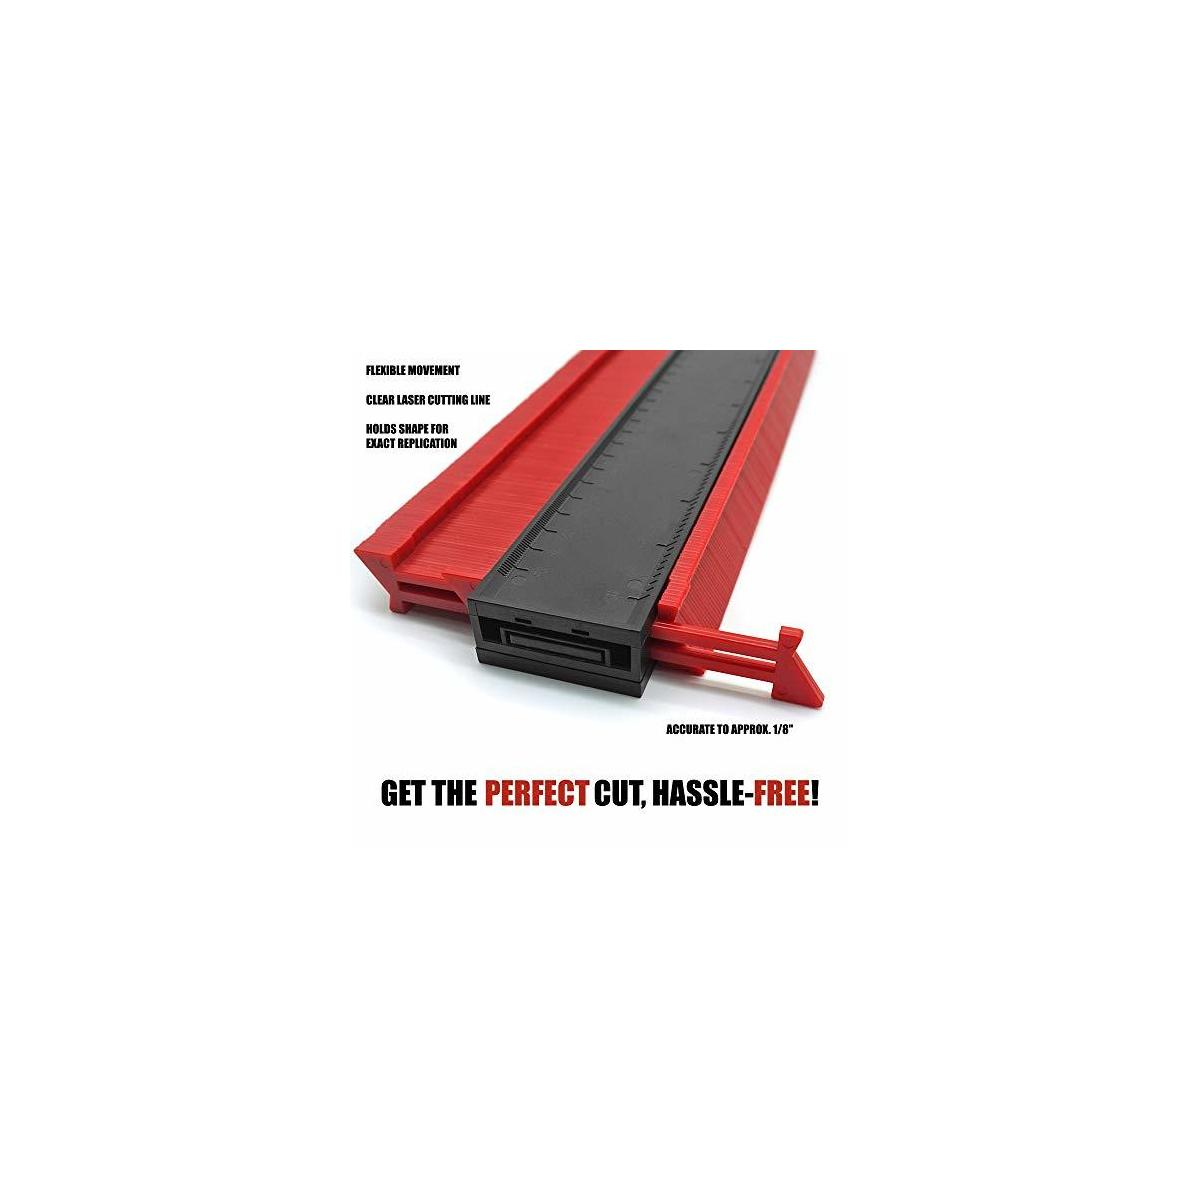 Contour Gauge Duplicator (10 Inch, 5 Inch) and Multi Angle Measuring Ruler 4 PC. Set by Innovate Infinity